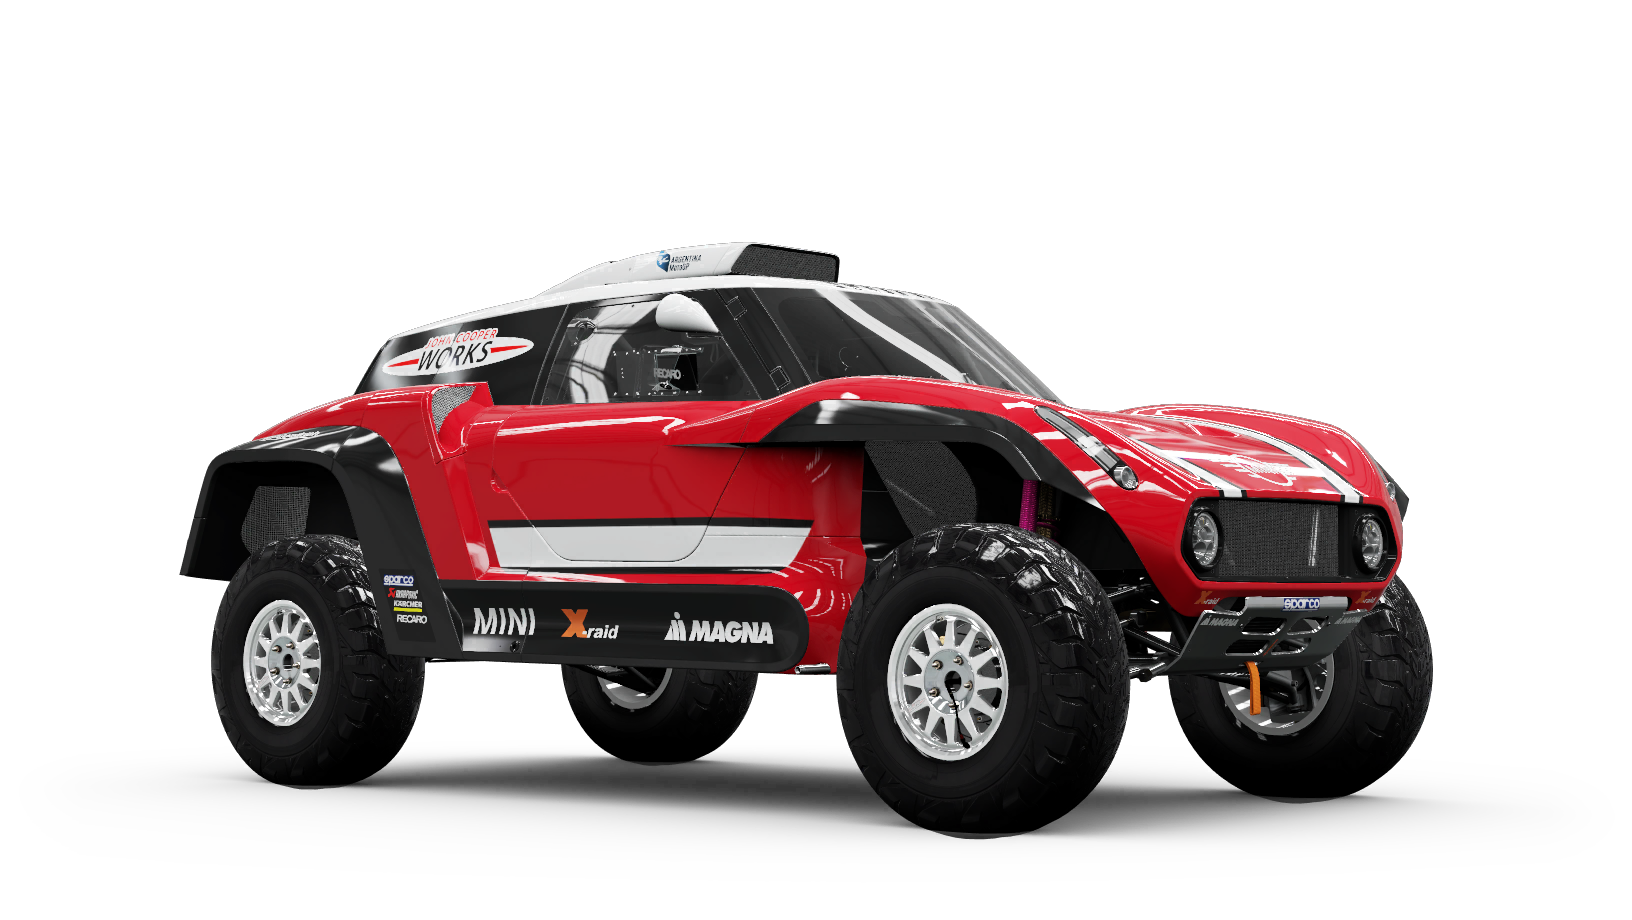 MINI X-Raid John Cooper Works Buggy